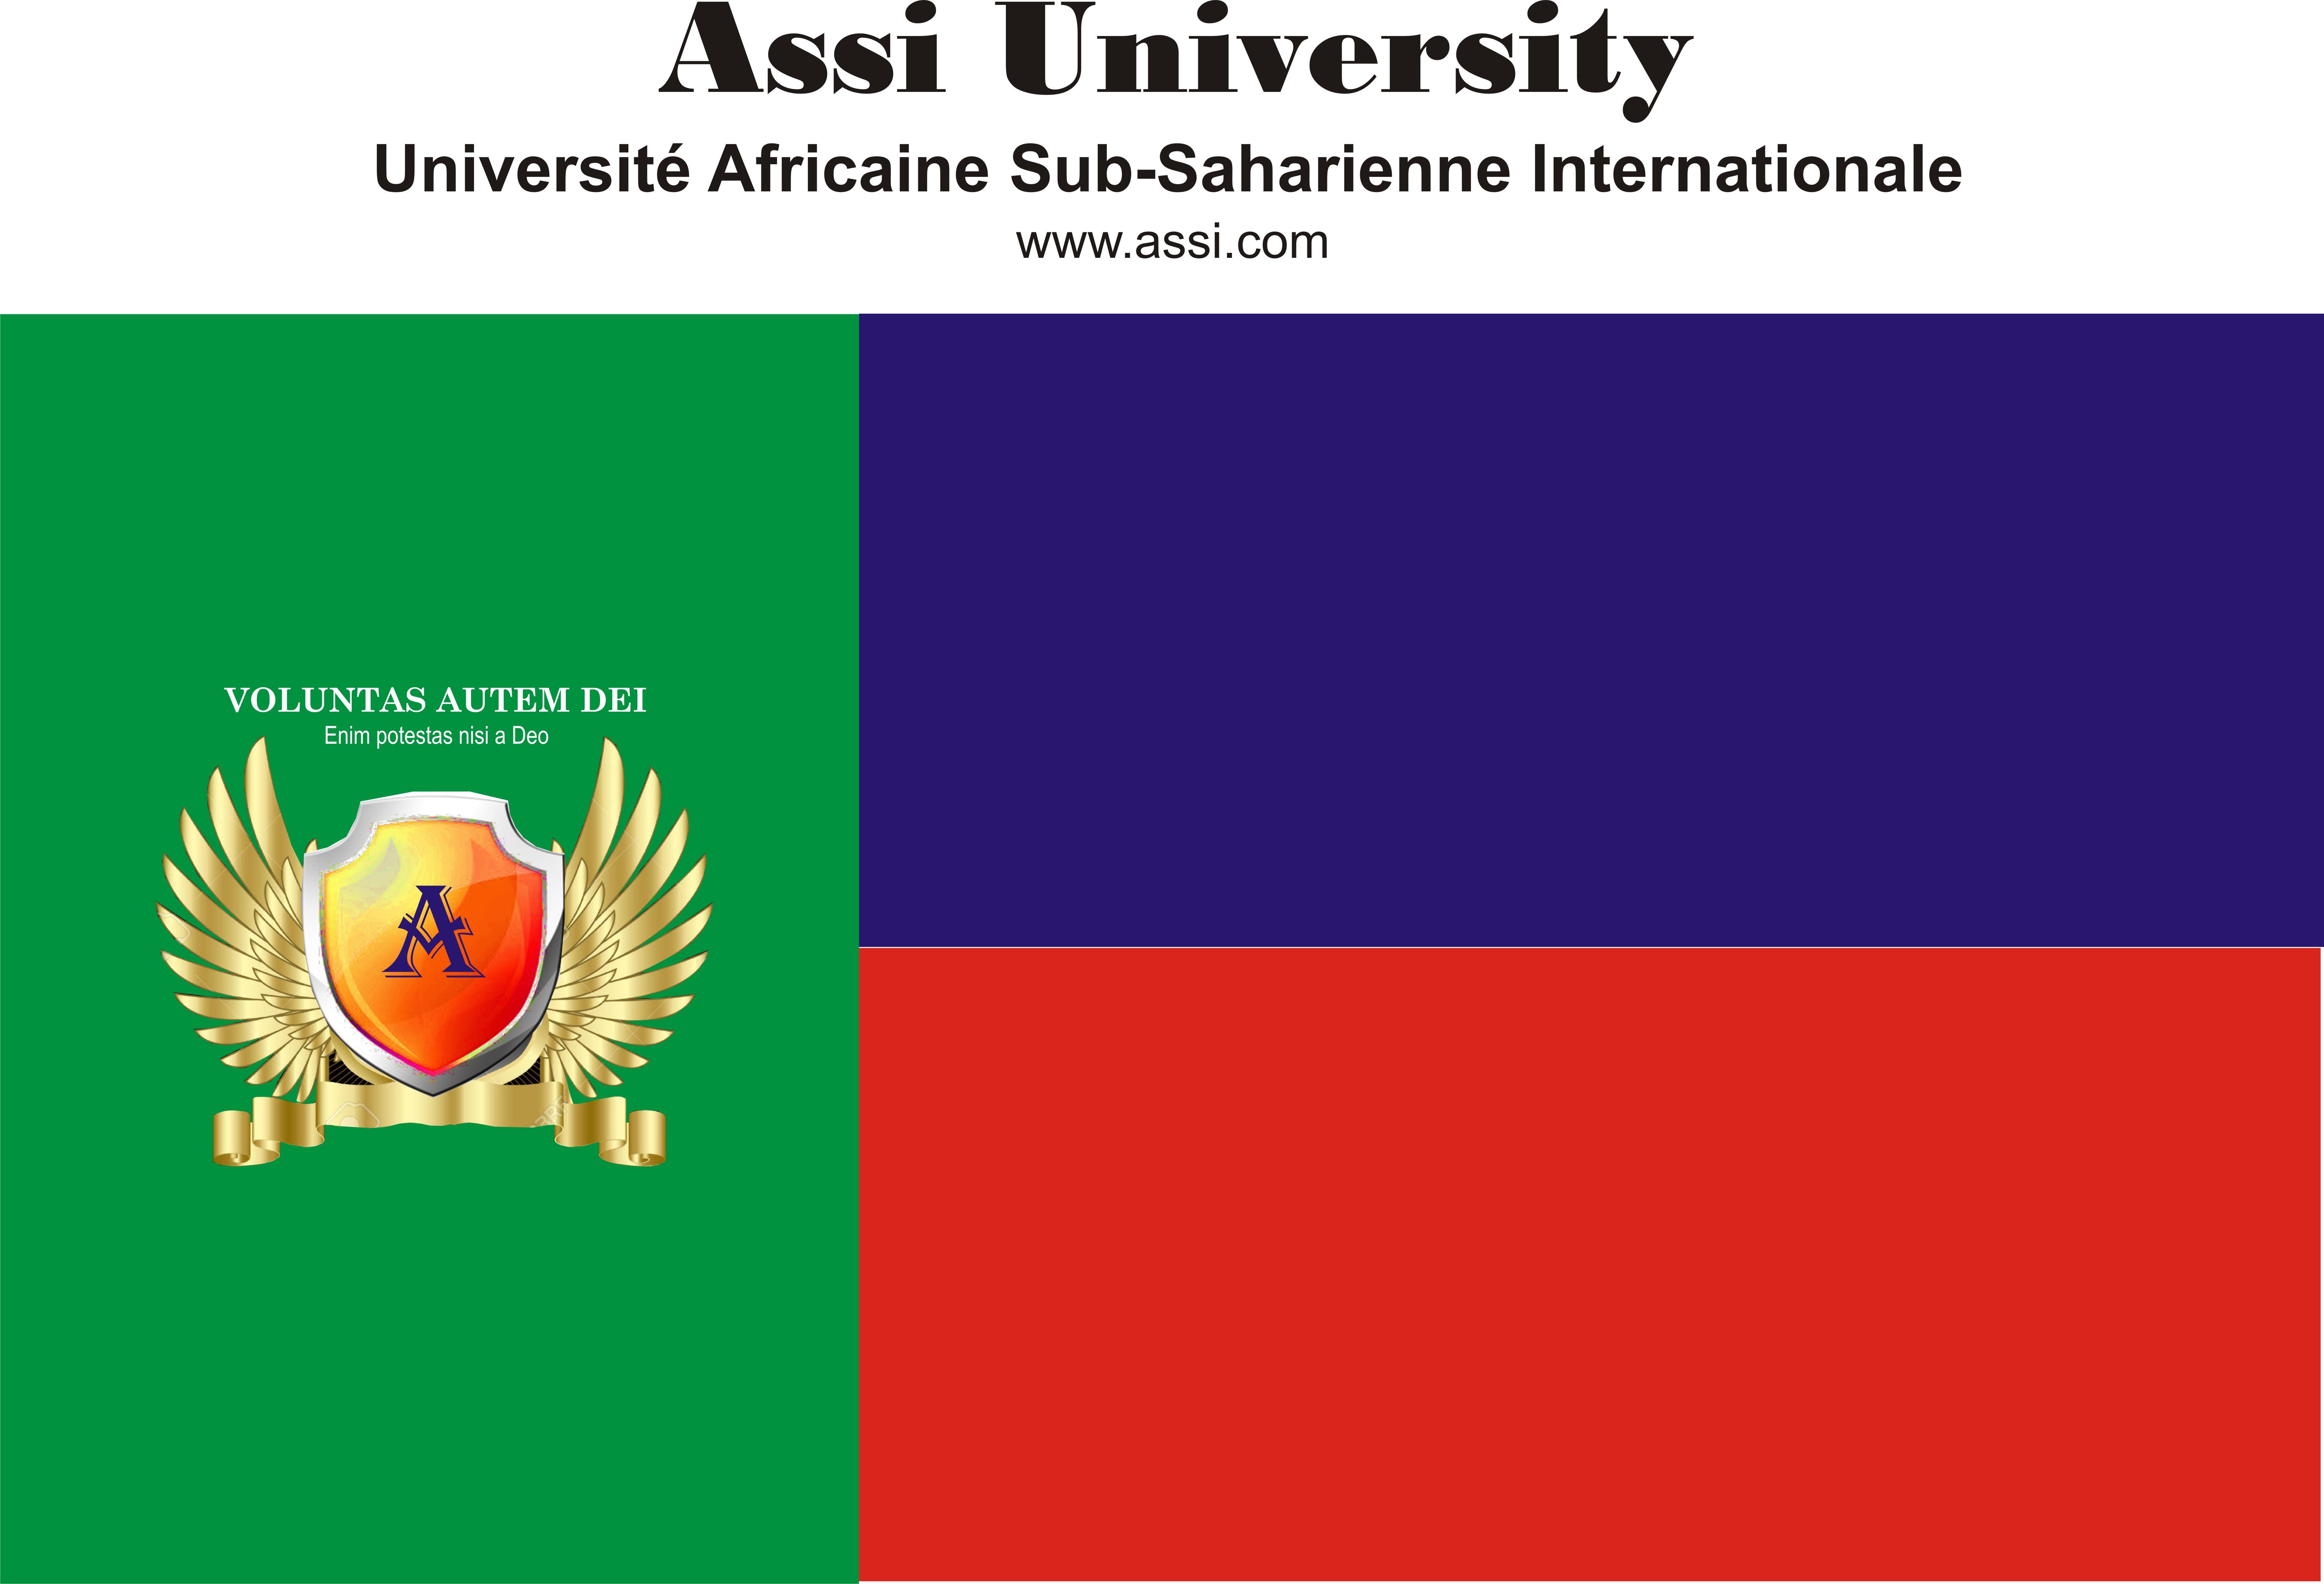 Courses and Departments – Assi University